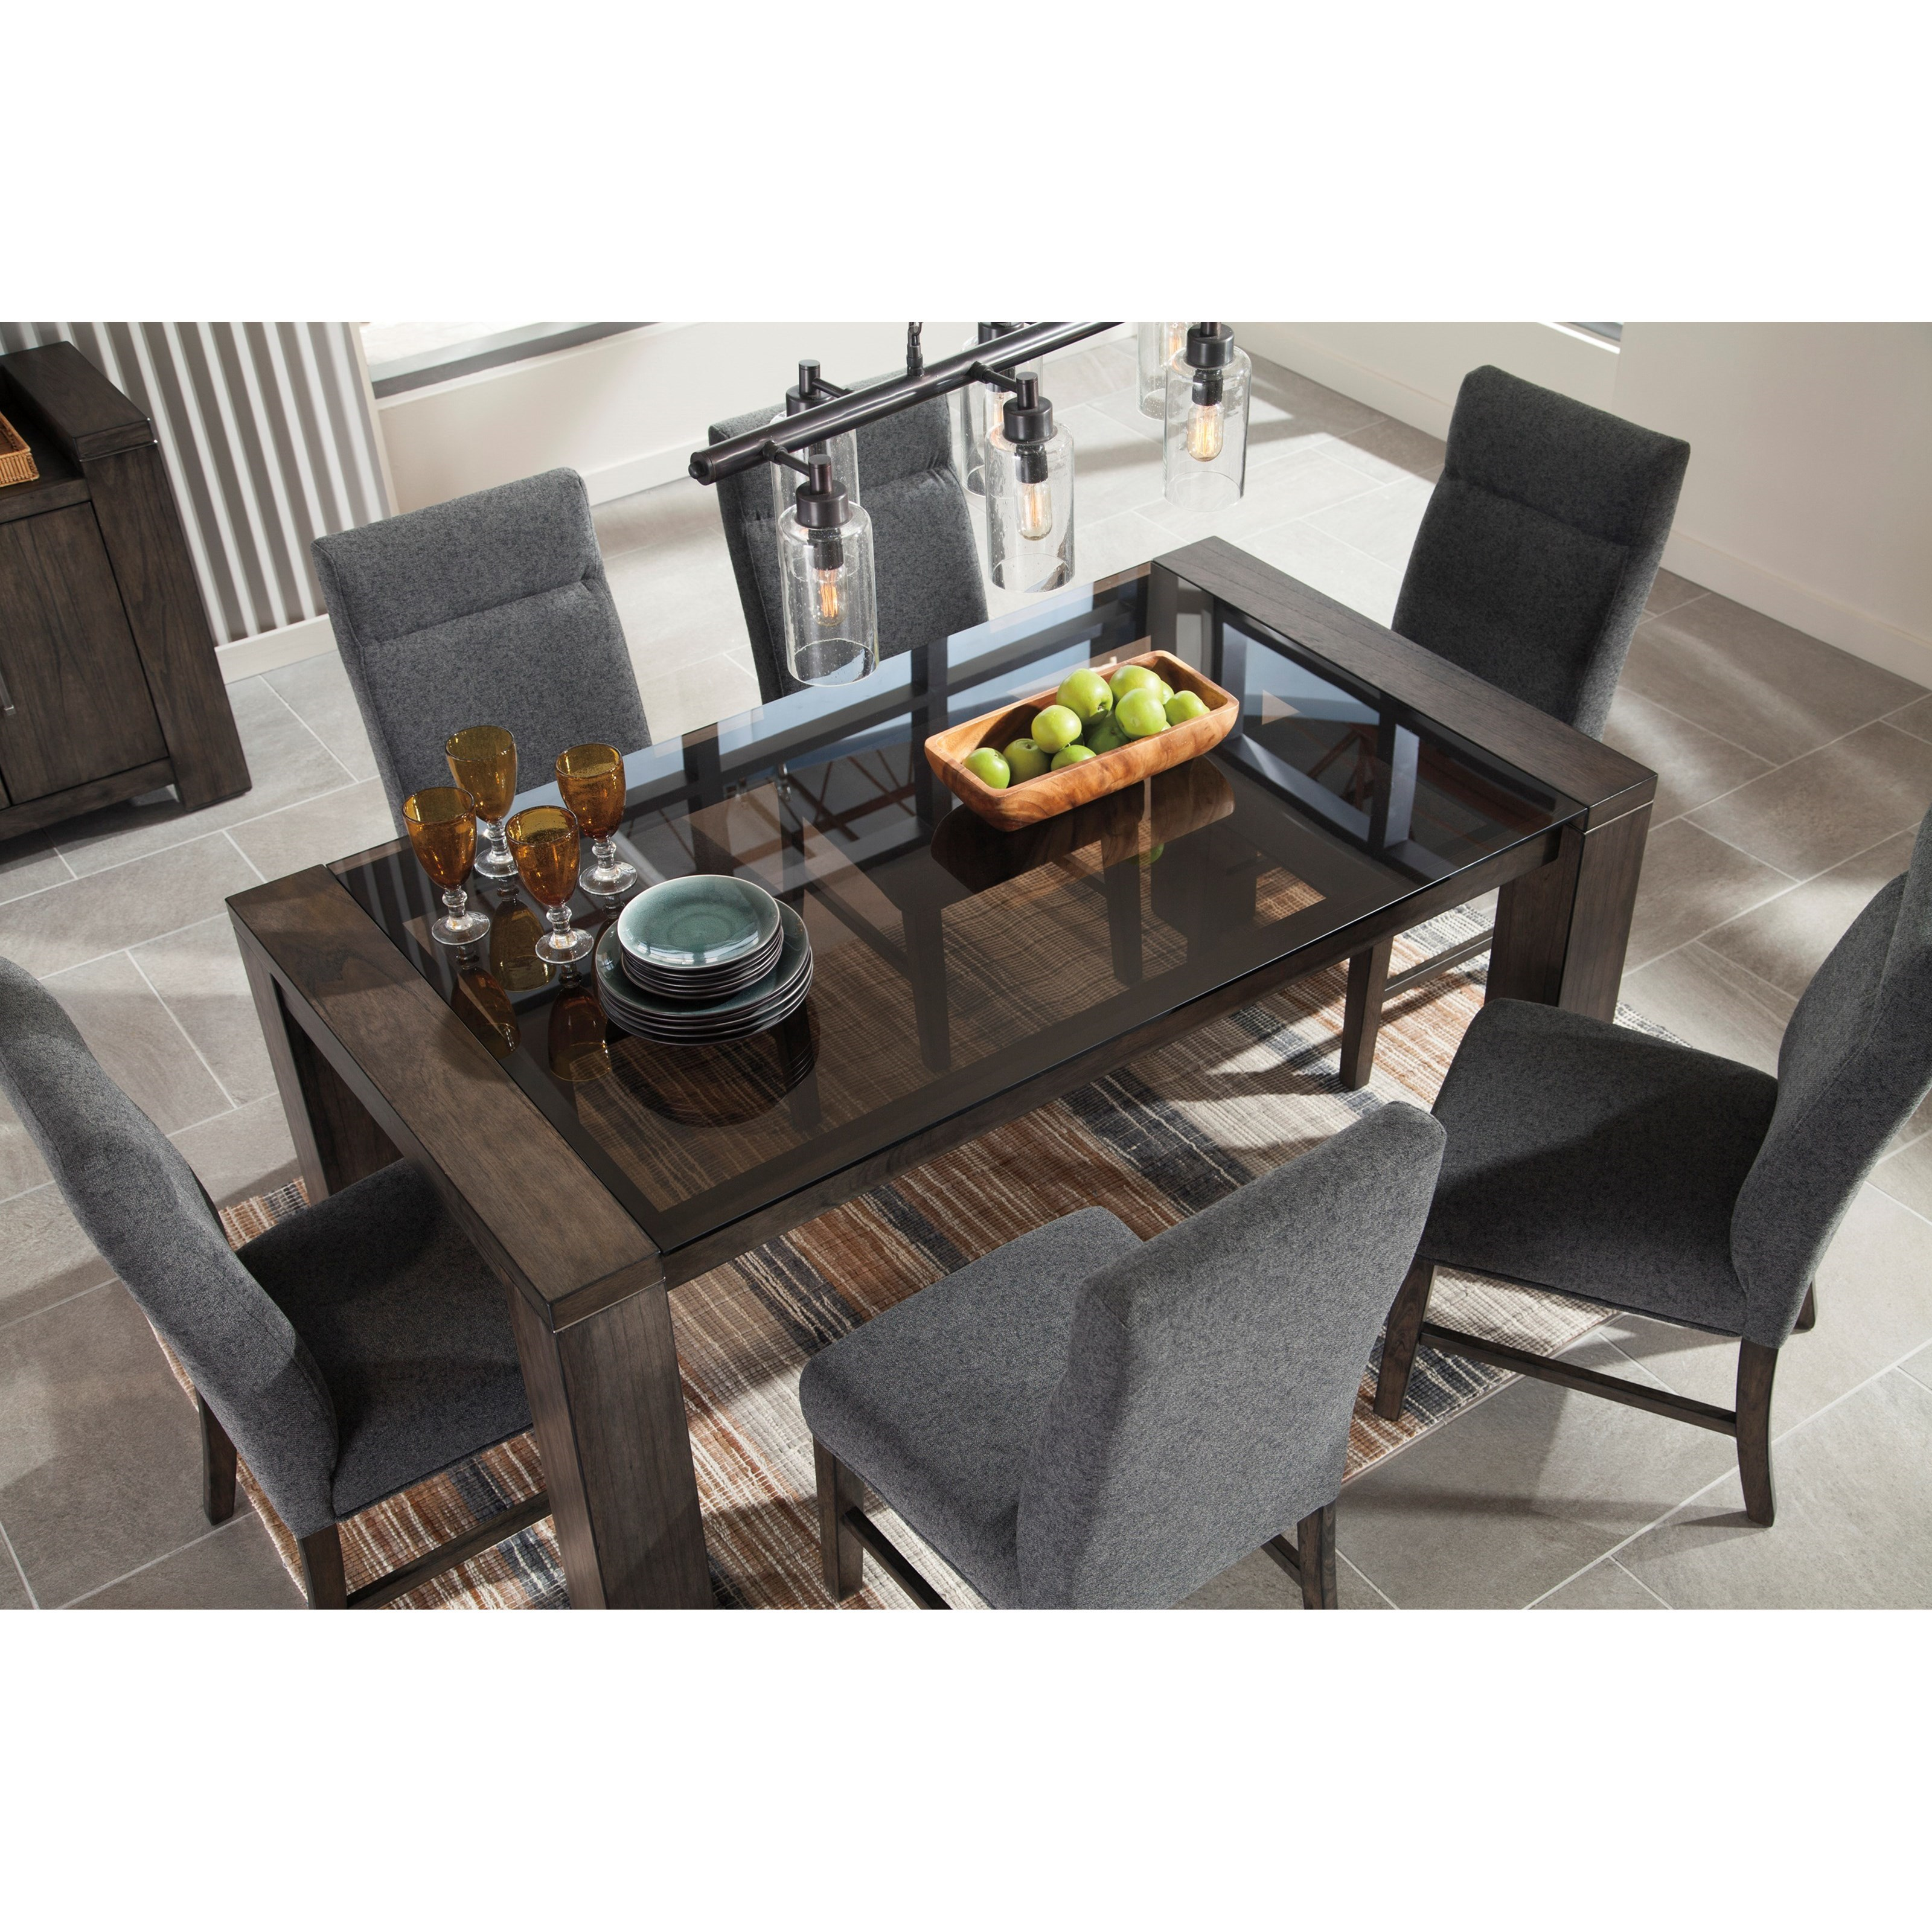 Ashley signature design chansey d667 25 contemporary rectangular dining room table with glass - Glass top dining room tables rectangular ...